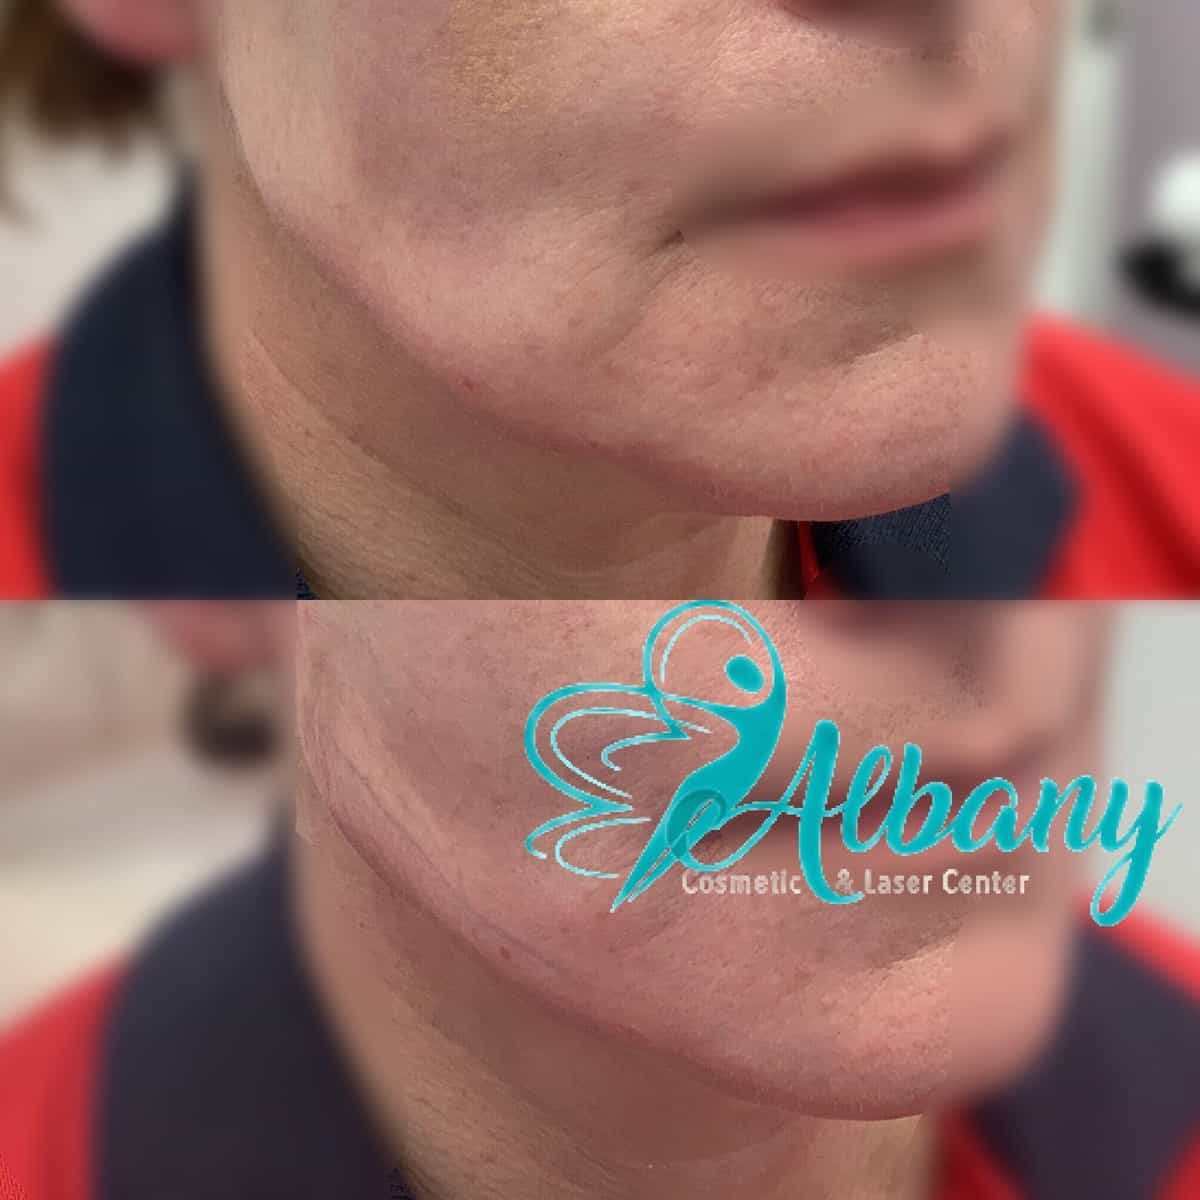 Jawline contouring with threads